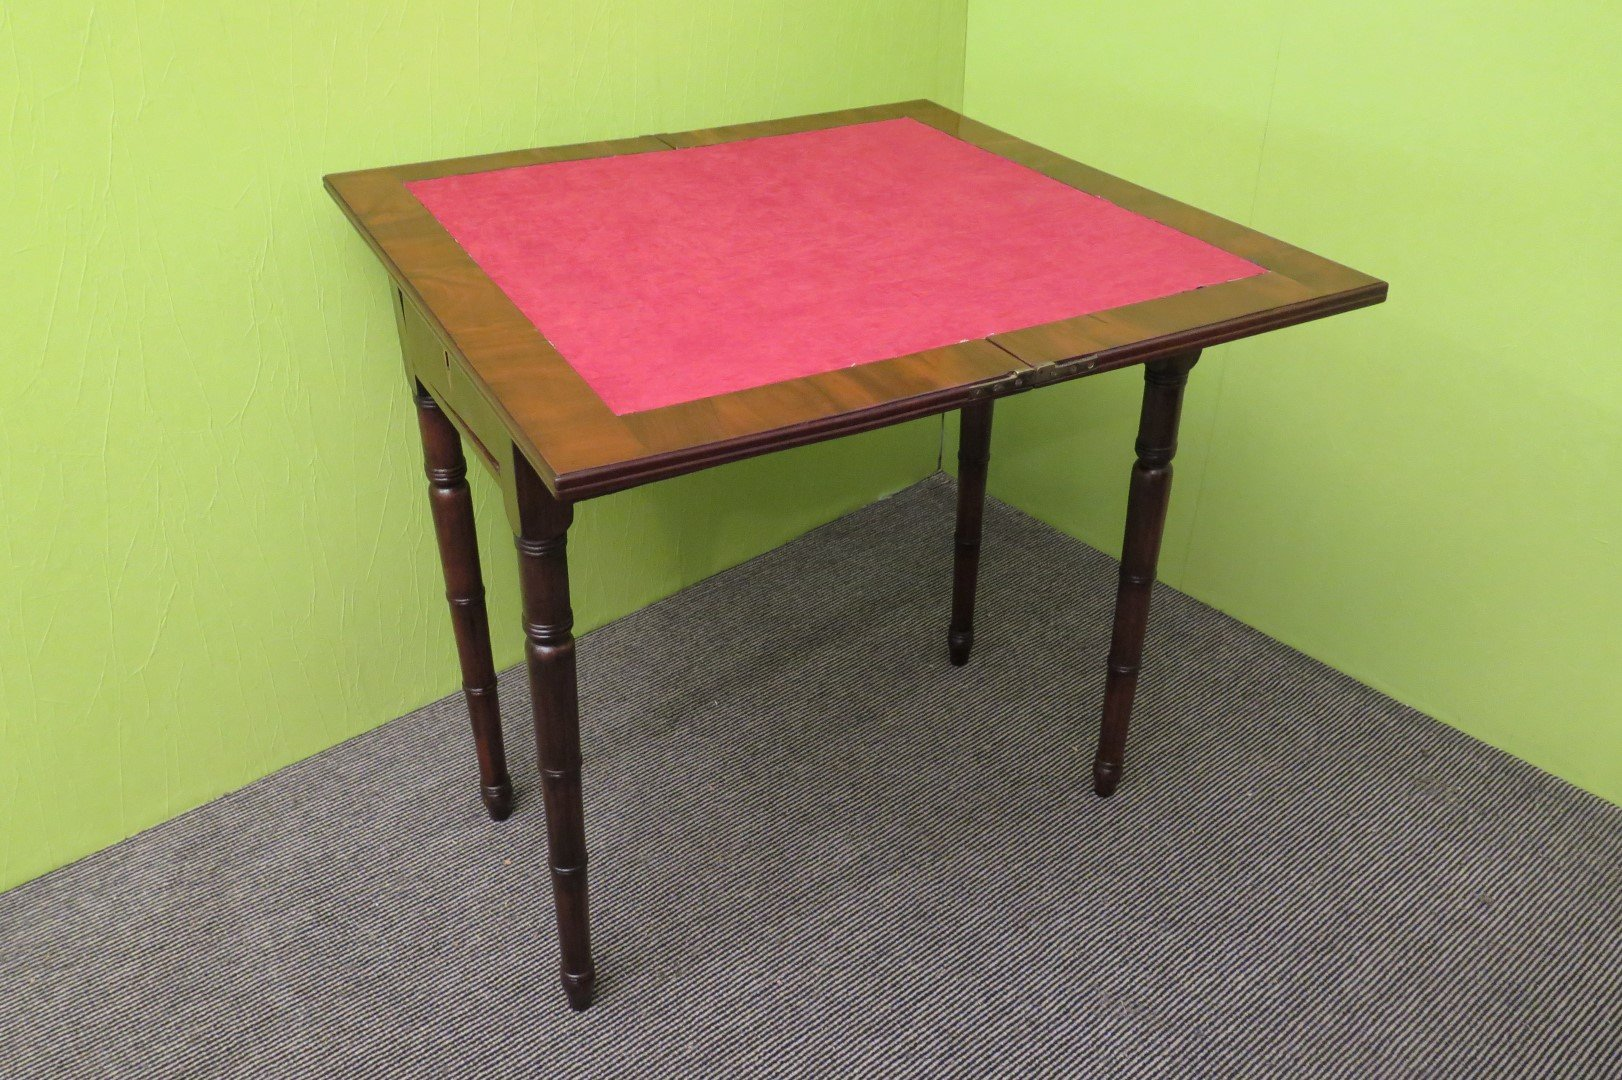 Antique Italian Card Playing Table 1850s For Sale At Pamono